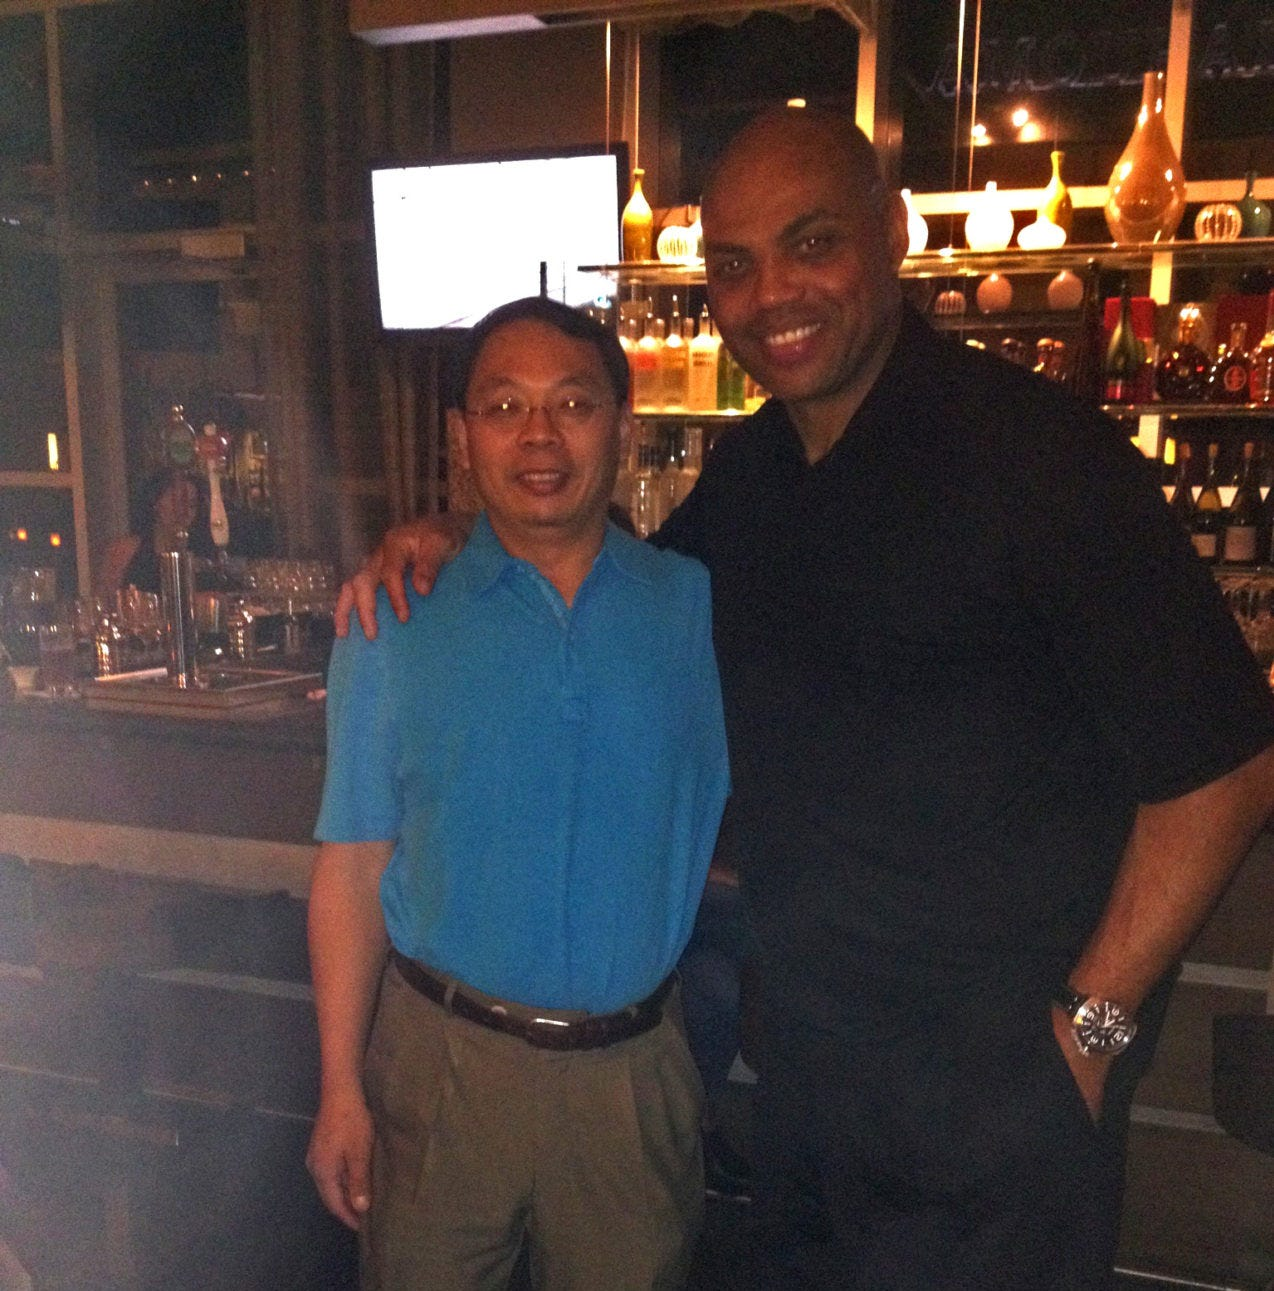 'Blessed to know him as a person': An Iowa scientist's unlikely friendship with Charles Barkley